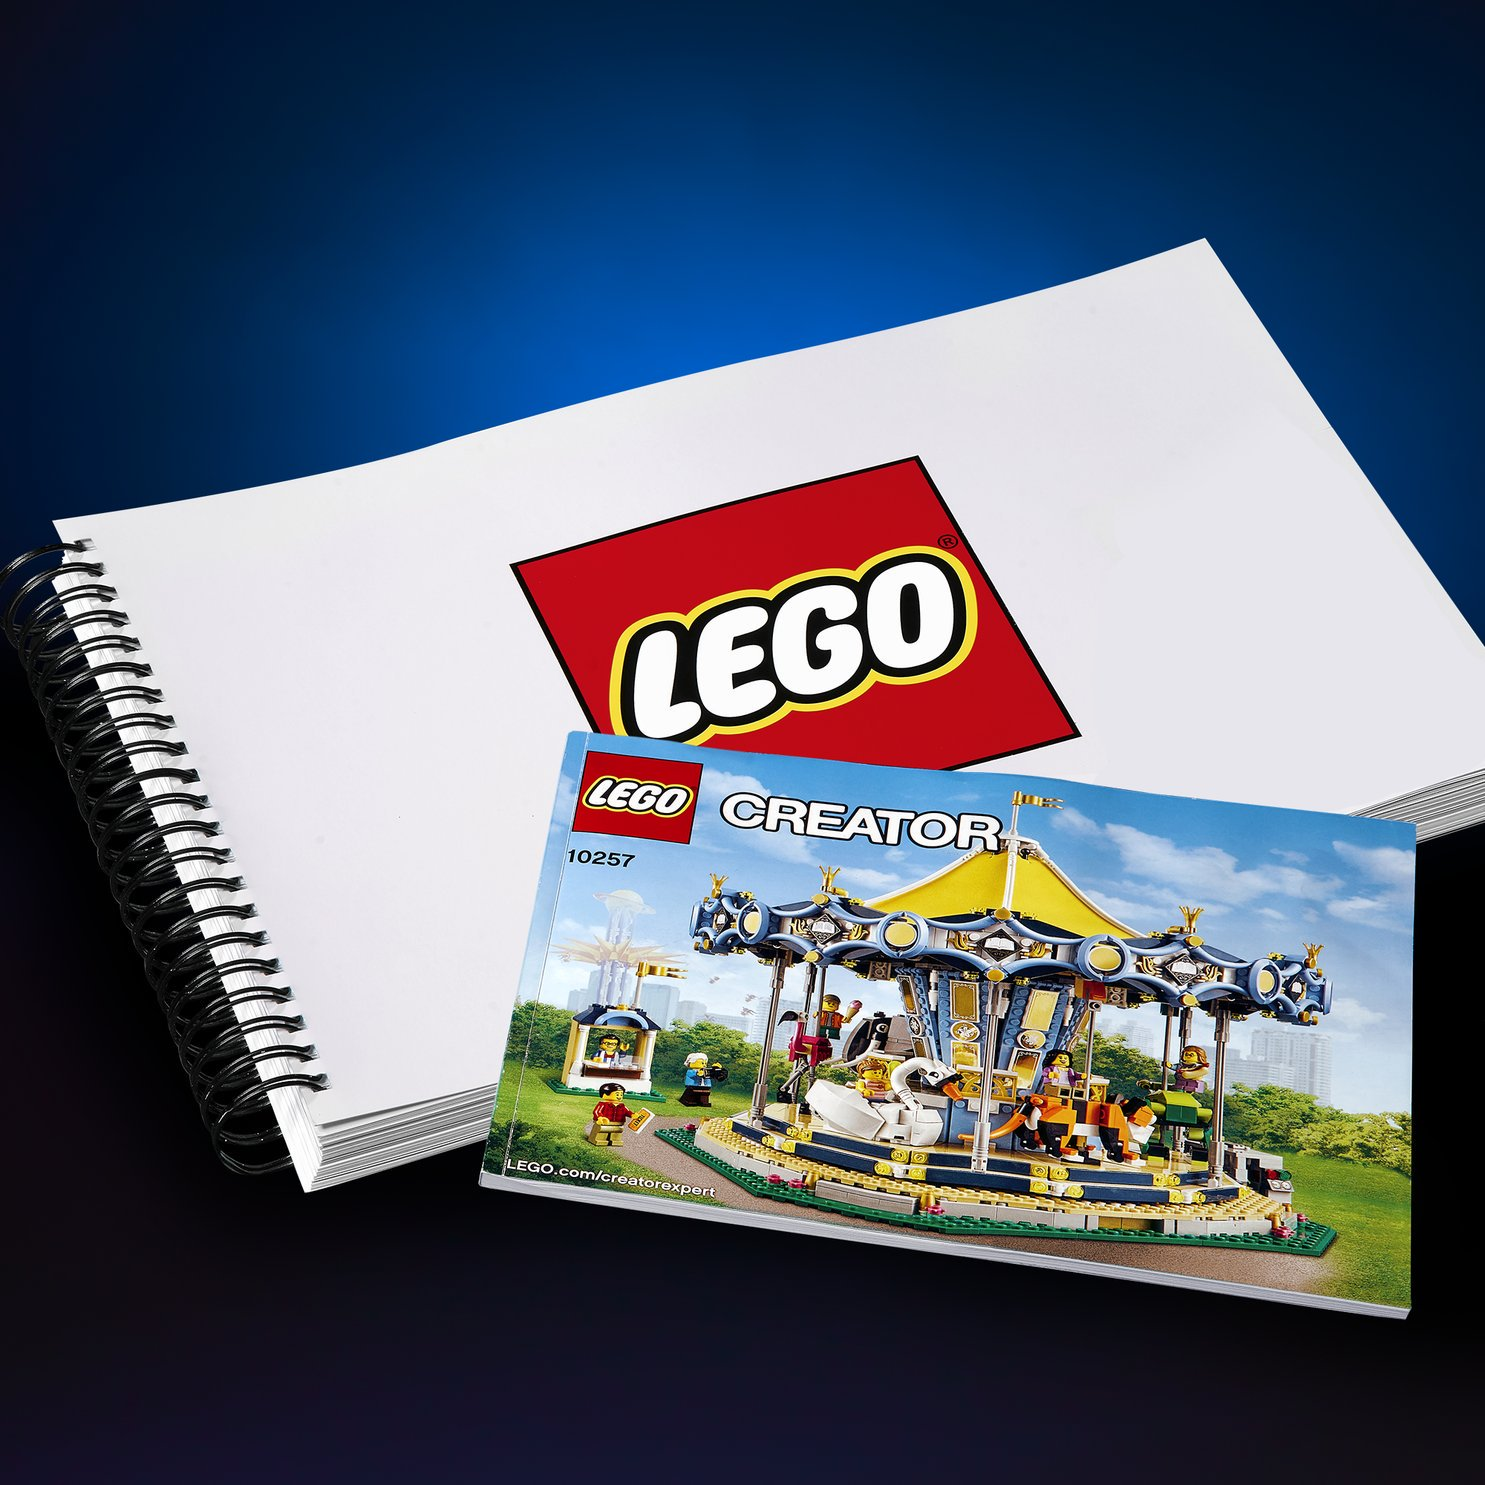 Teaser #2 - The instruction manual for the LEGO Carousel contains over 194 pages but something BIGGER is coming… 2.56 times bigger! -LEGO Group [August 8, 2017]